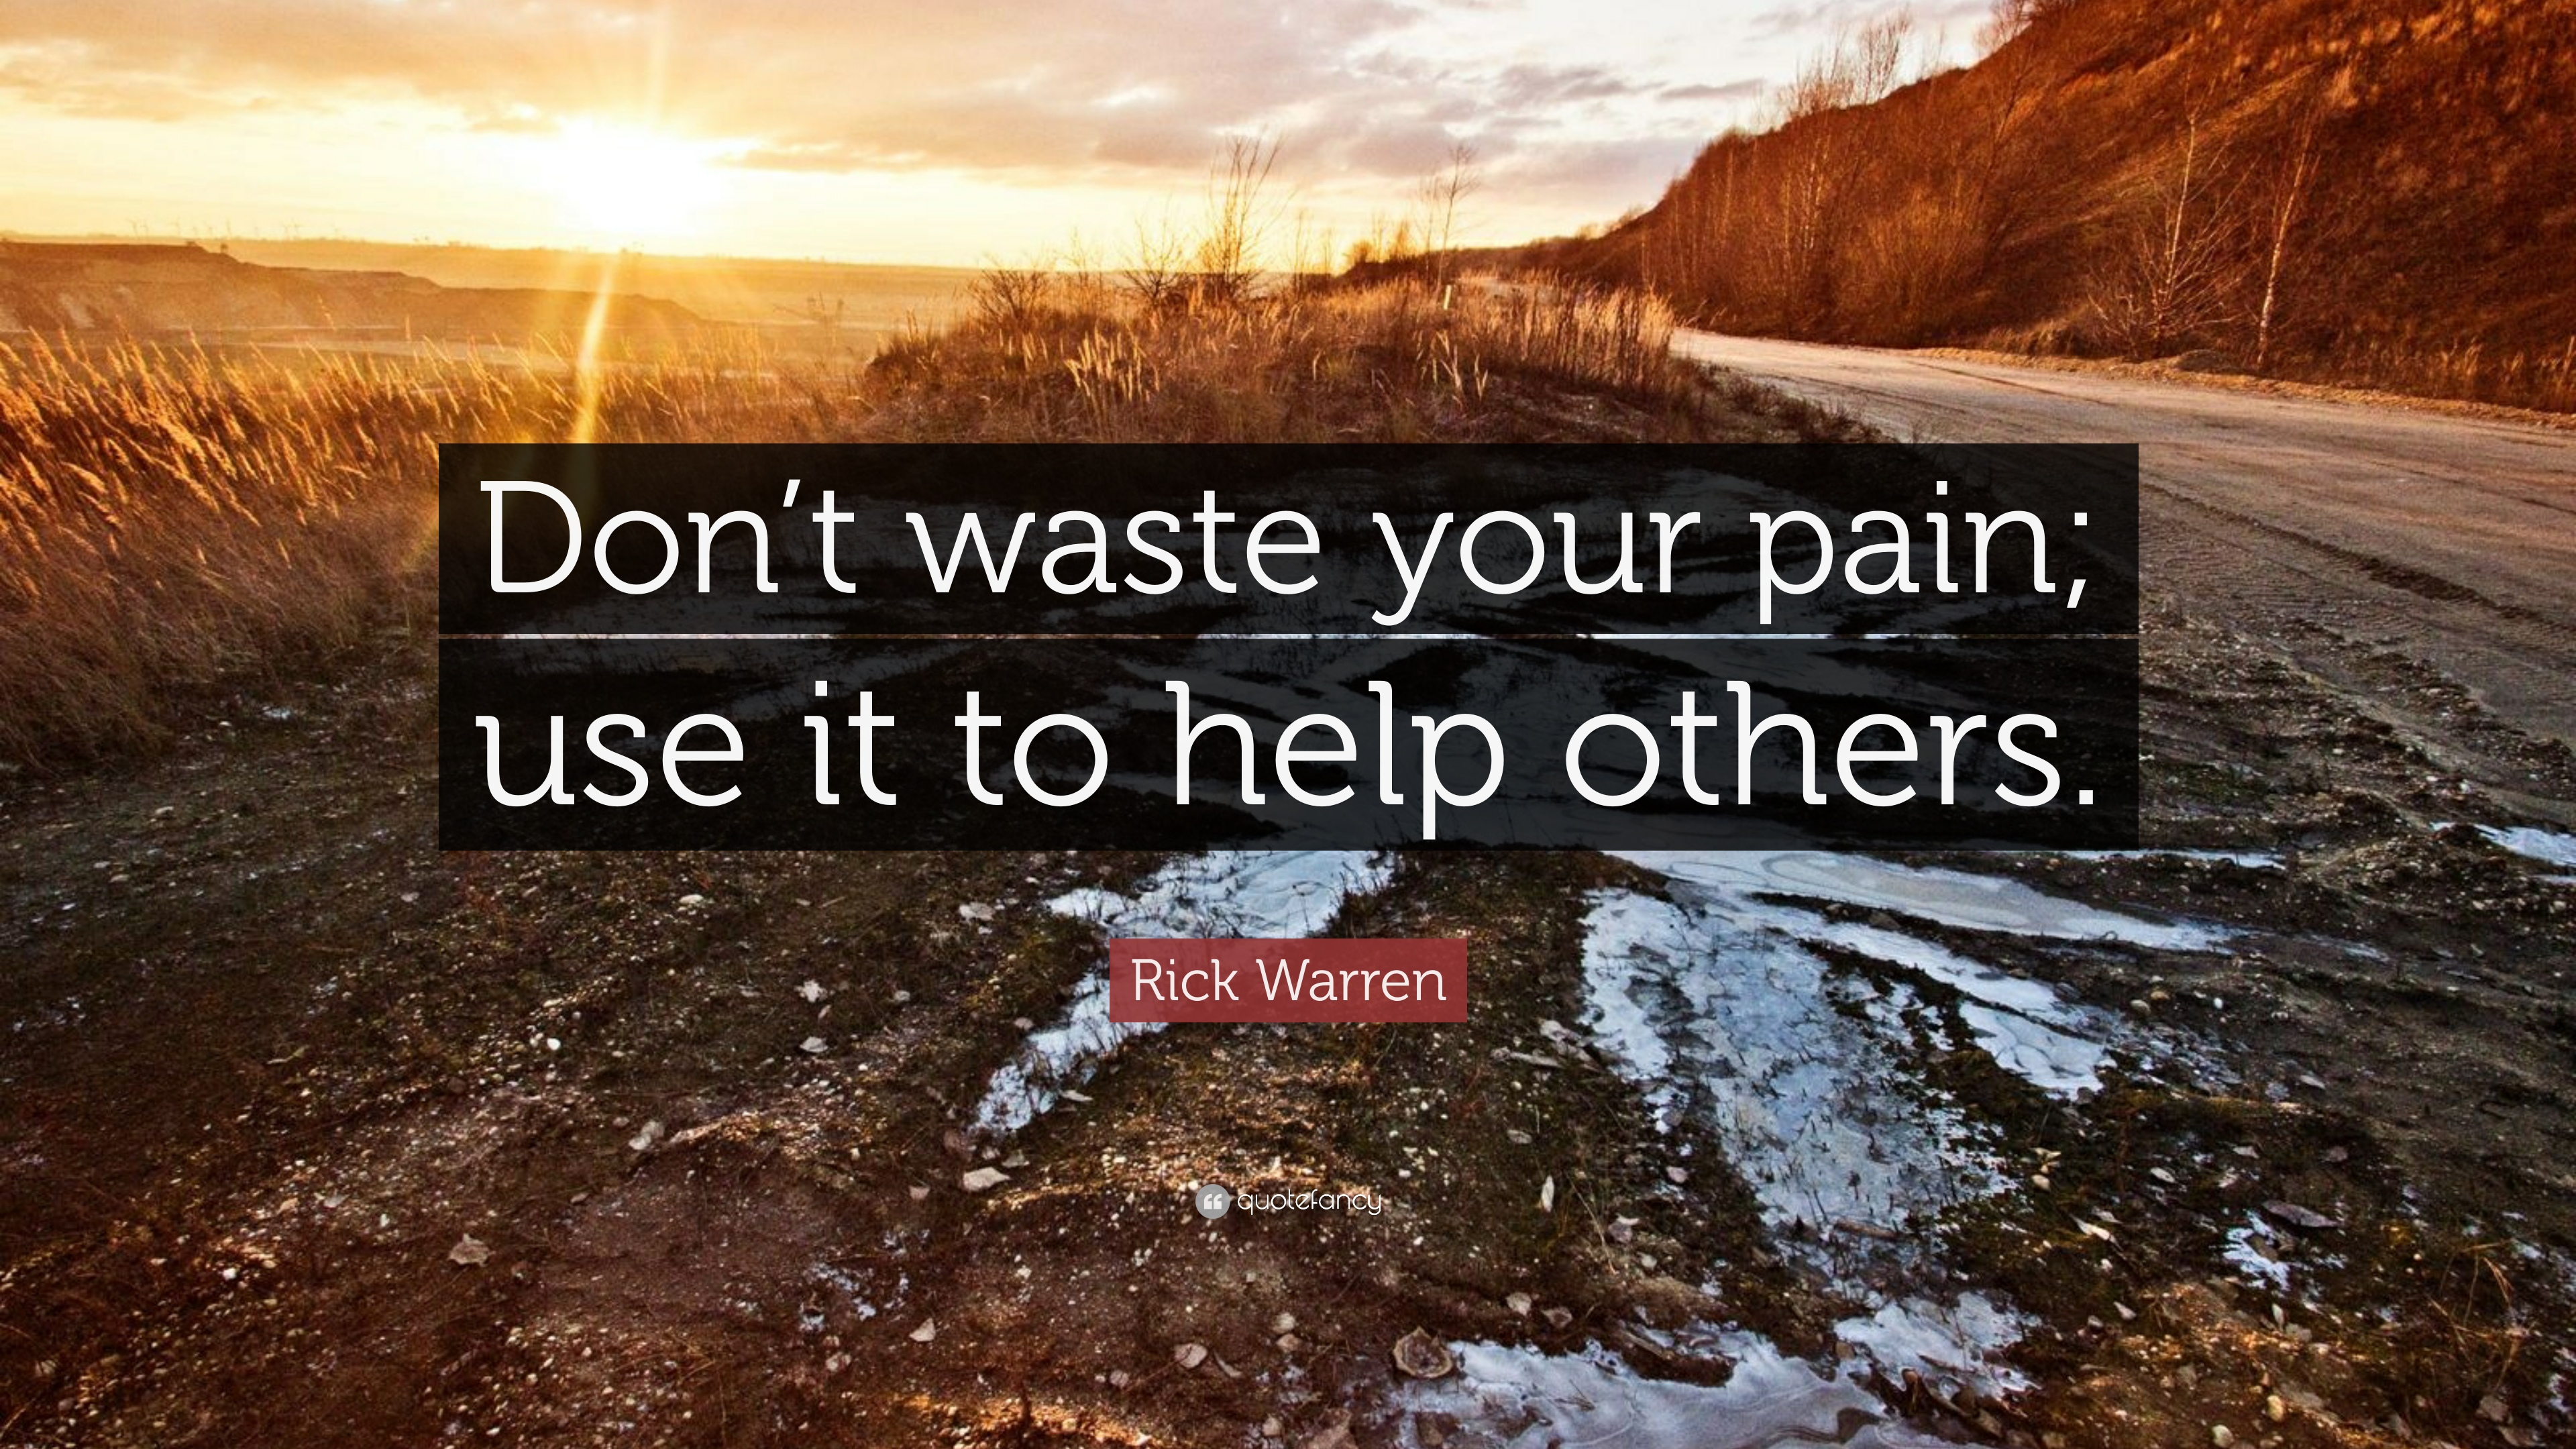 People Who Use Others Quotes: Helping Others Quotes (40 Wallpapers)